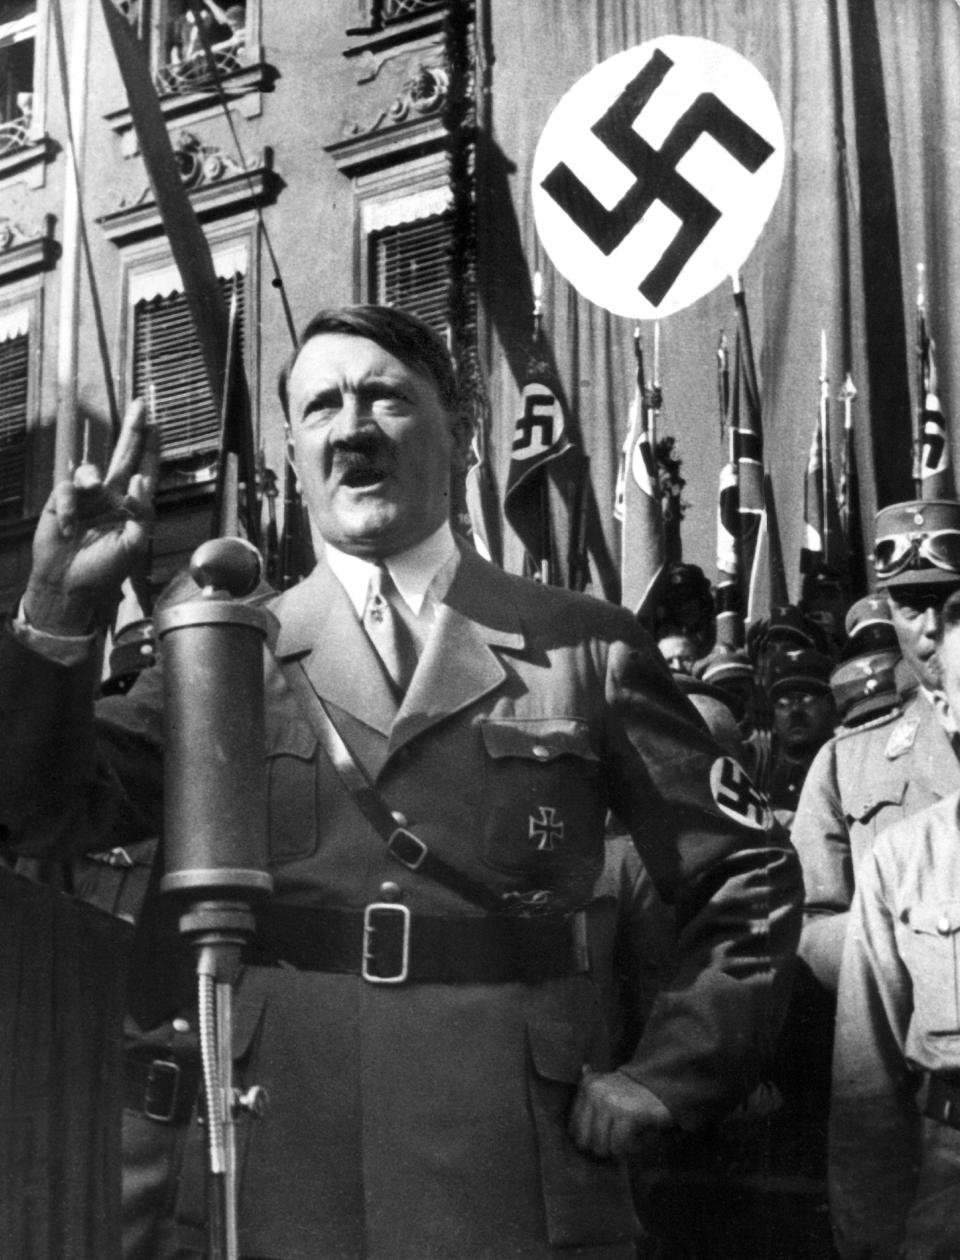 """FILE - An undated file picture shows the leader of the National Socialists Adolf Hitler, gesturing during a speech. A prominent European Jewish organization is criticizing a Munich auction house's decision to sell several of Nazi dictator Adolf Hitler's handwritten speeches, saying it """"defies logic, decency and humanity"""" to put them on the market(dpa via AP, file)"""